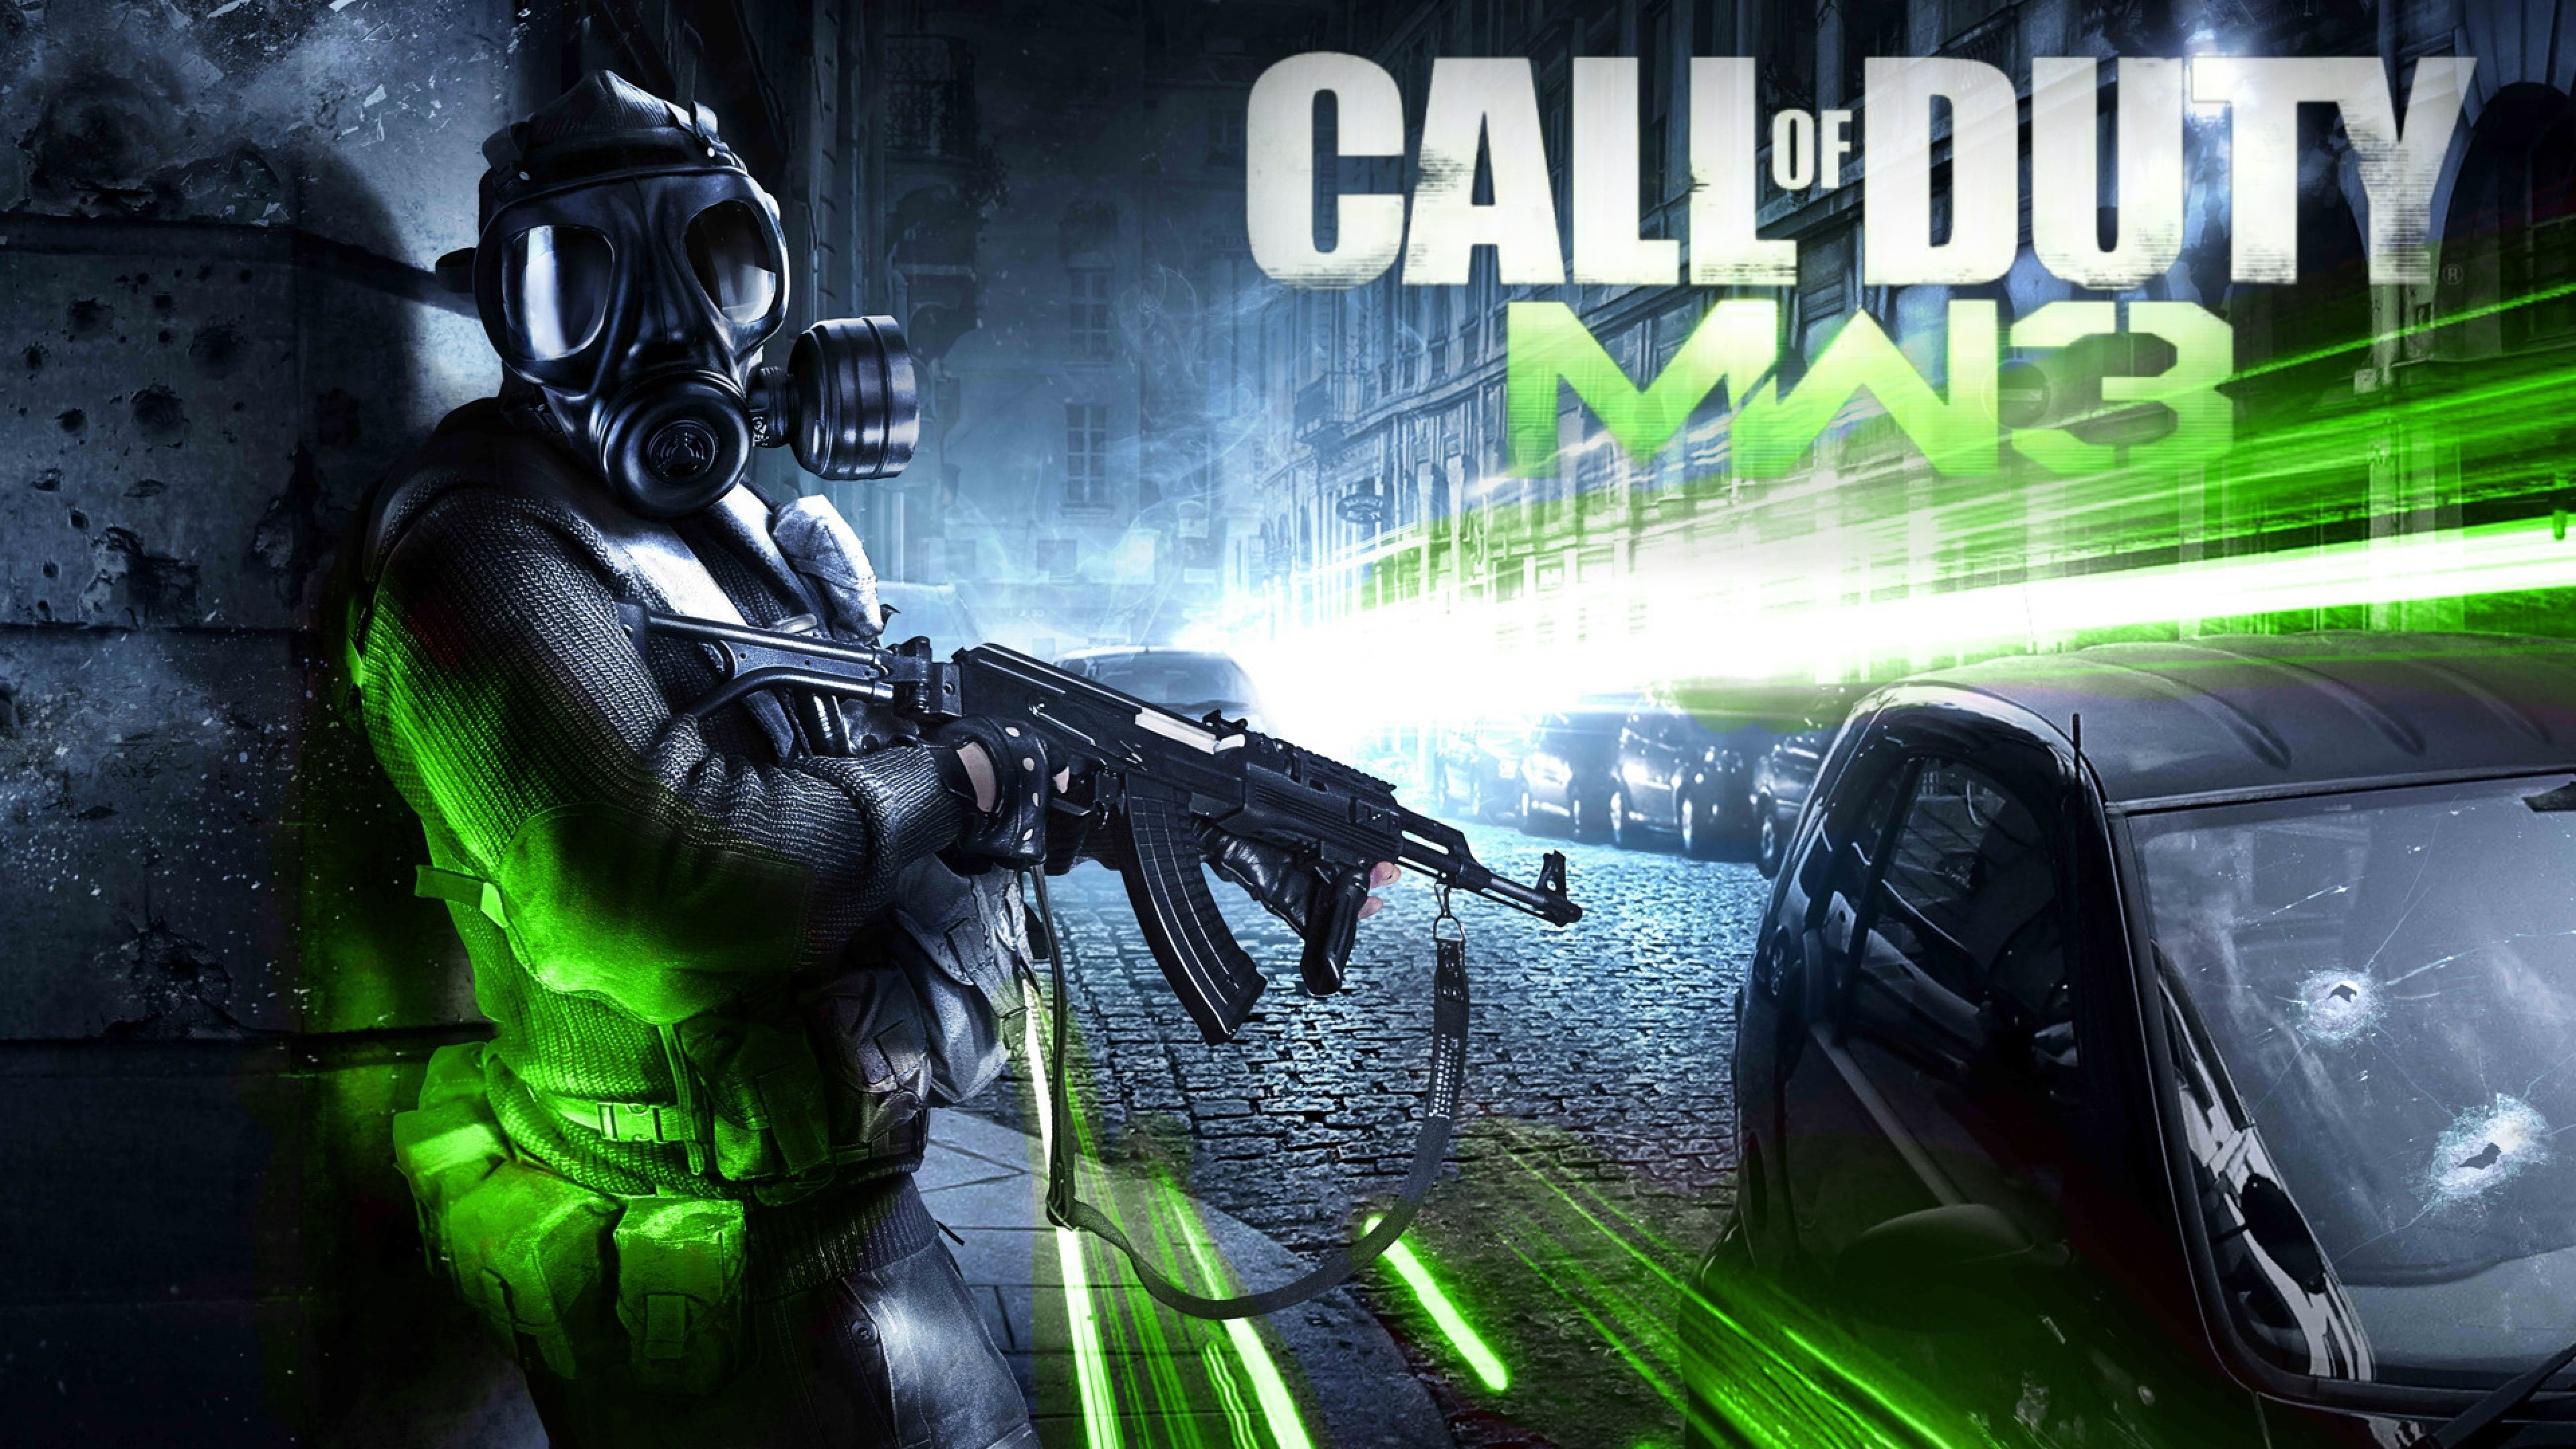 call of duty mw3 free download full version pc